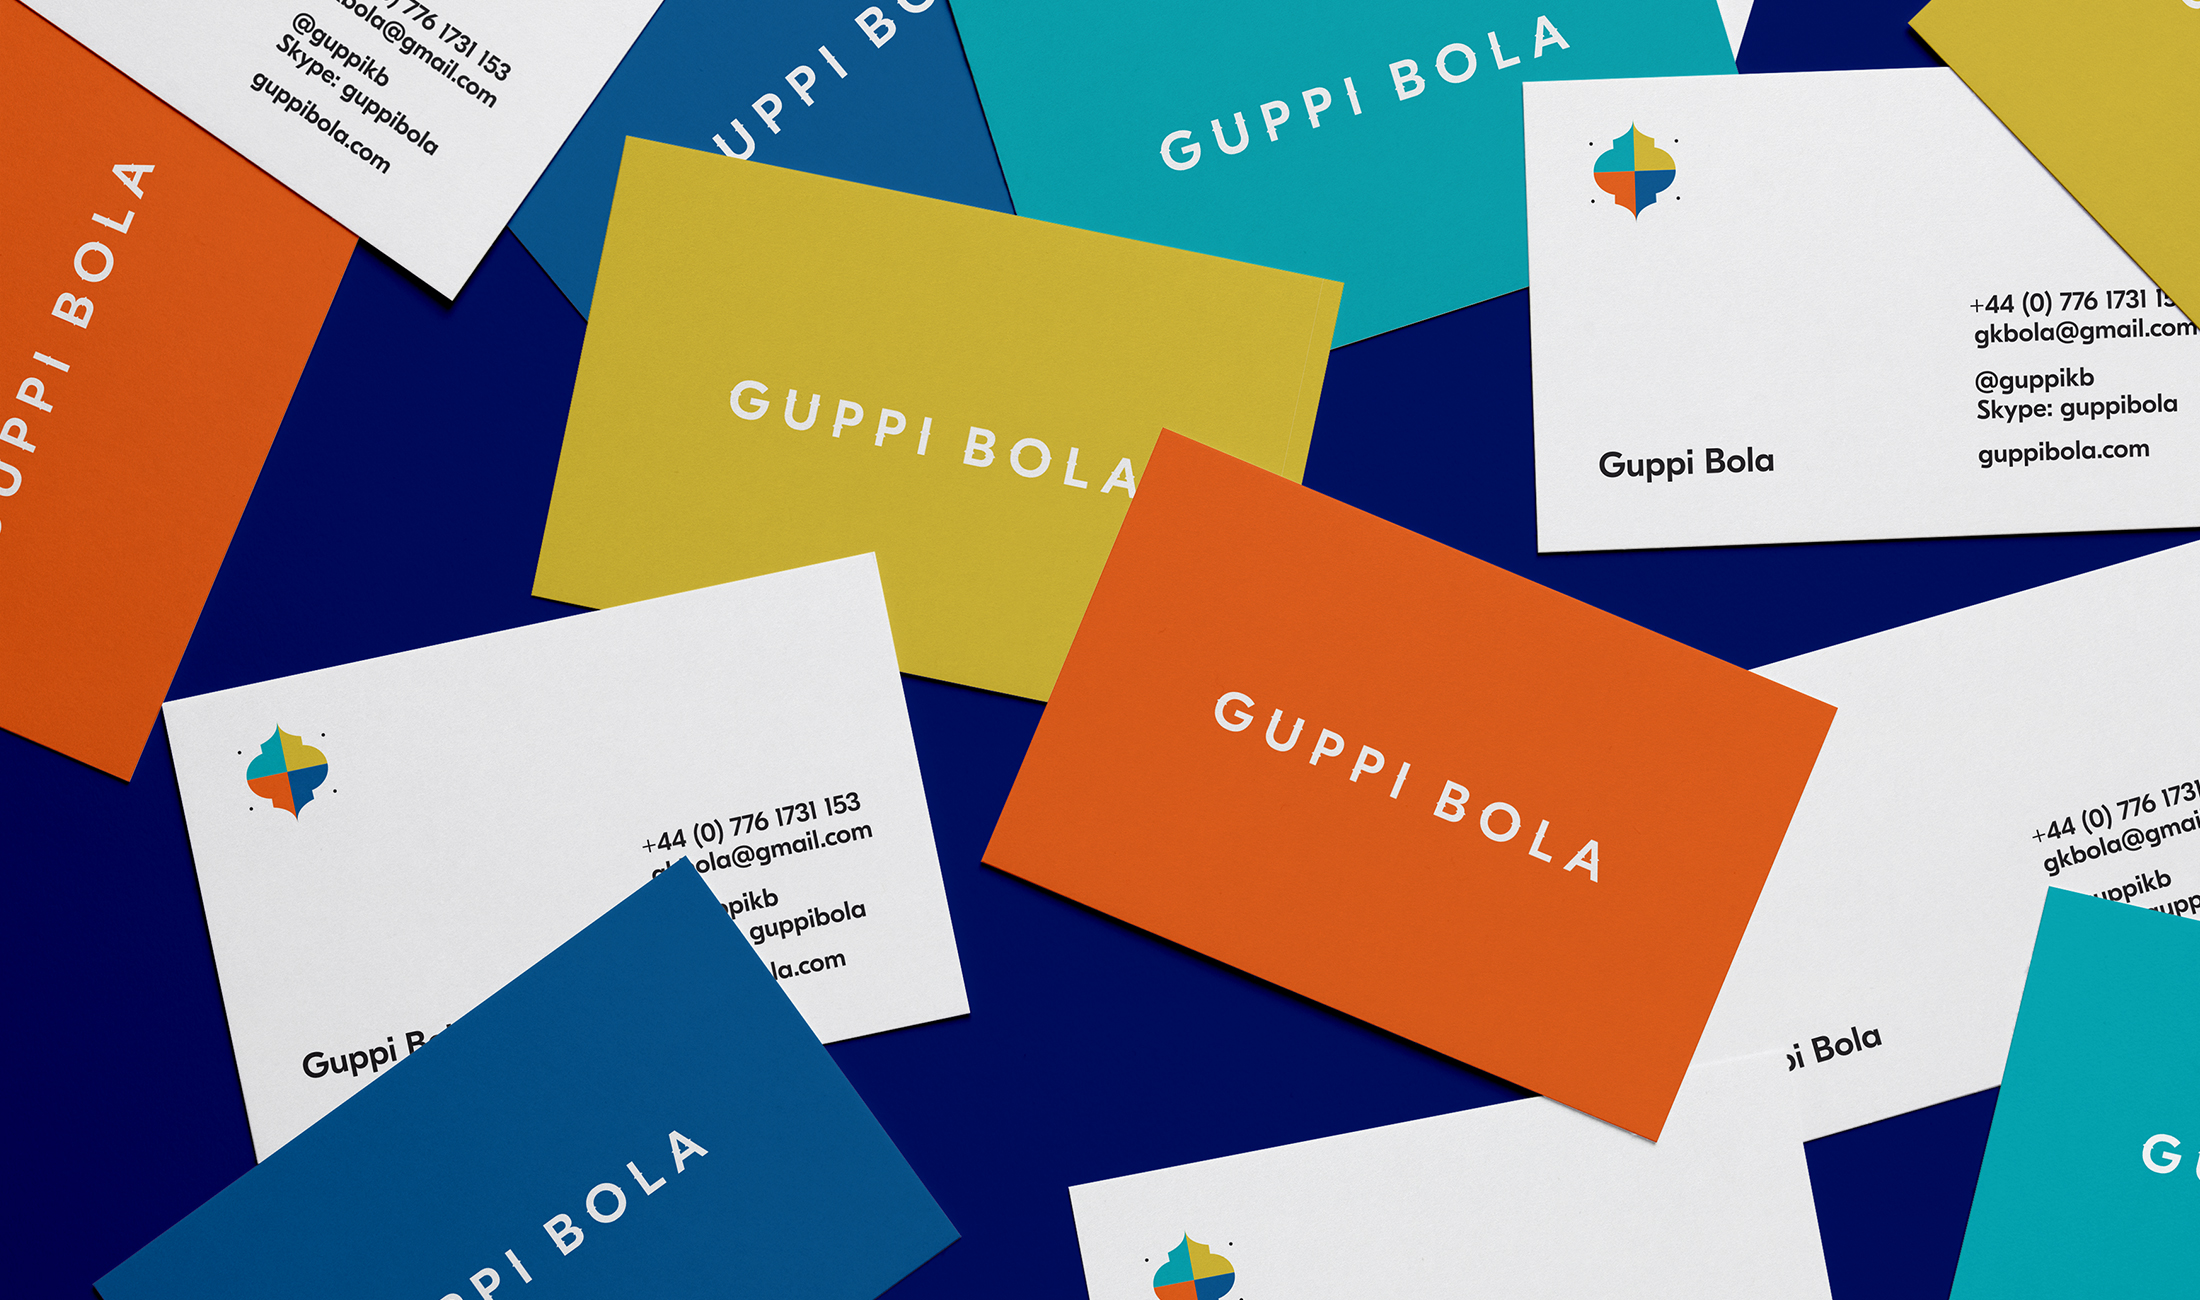 Guppi-Bola-business-cards-©-elena-manfredi